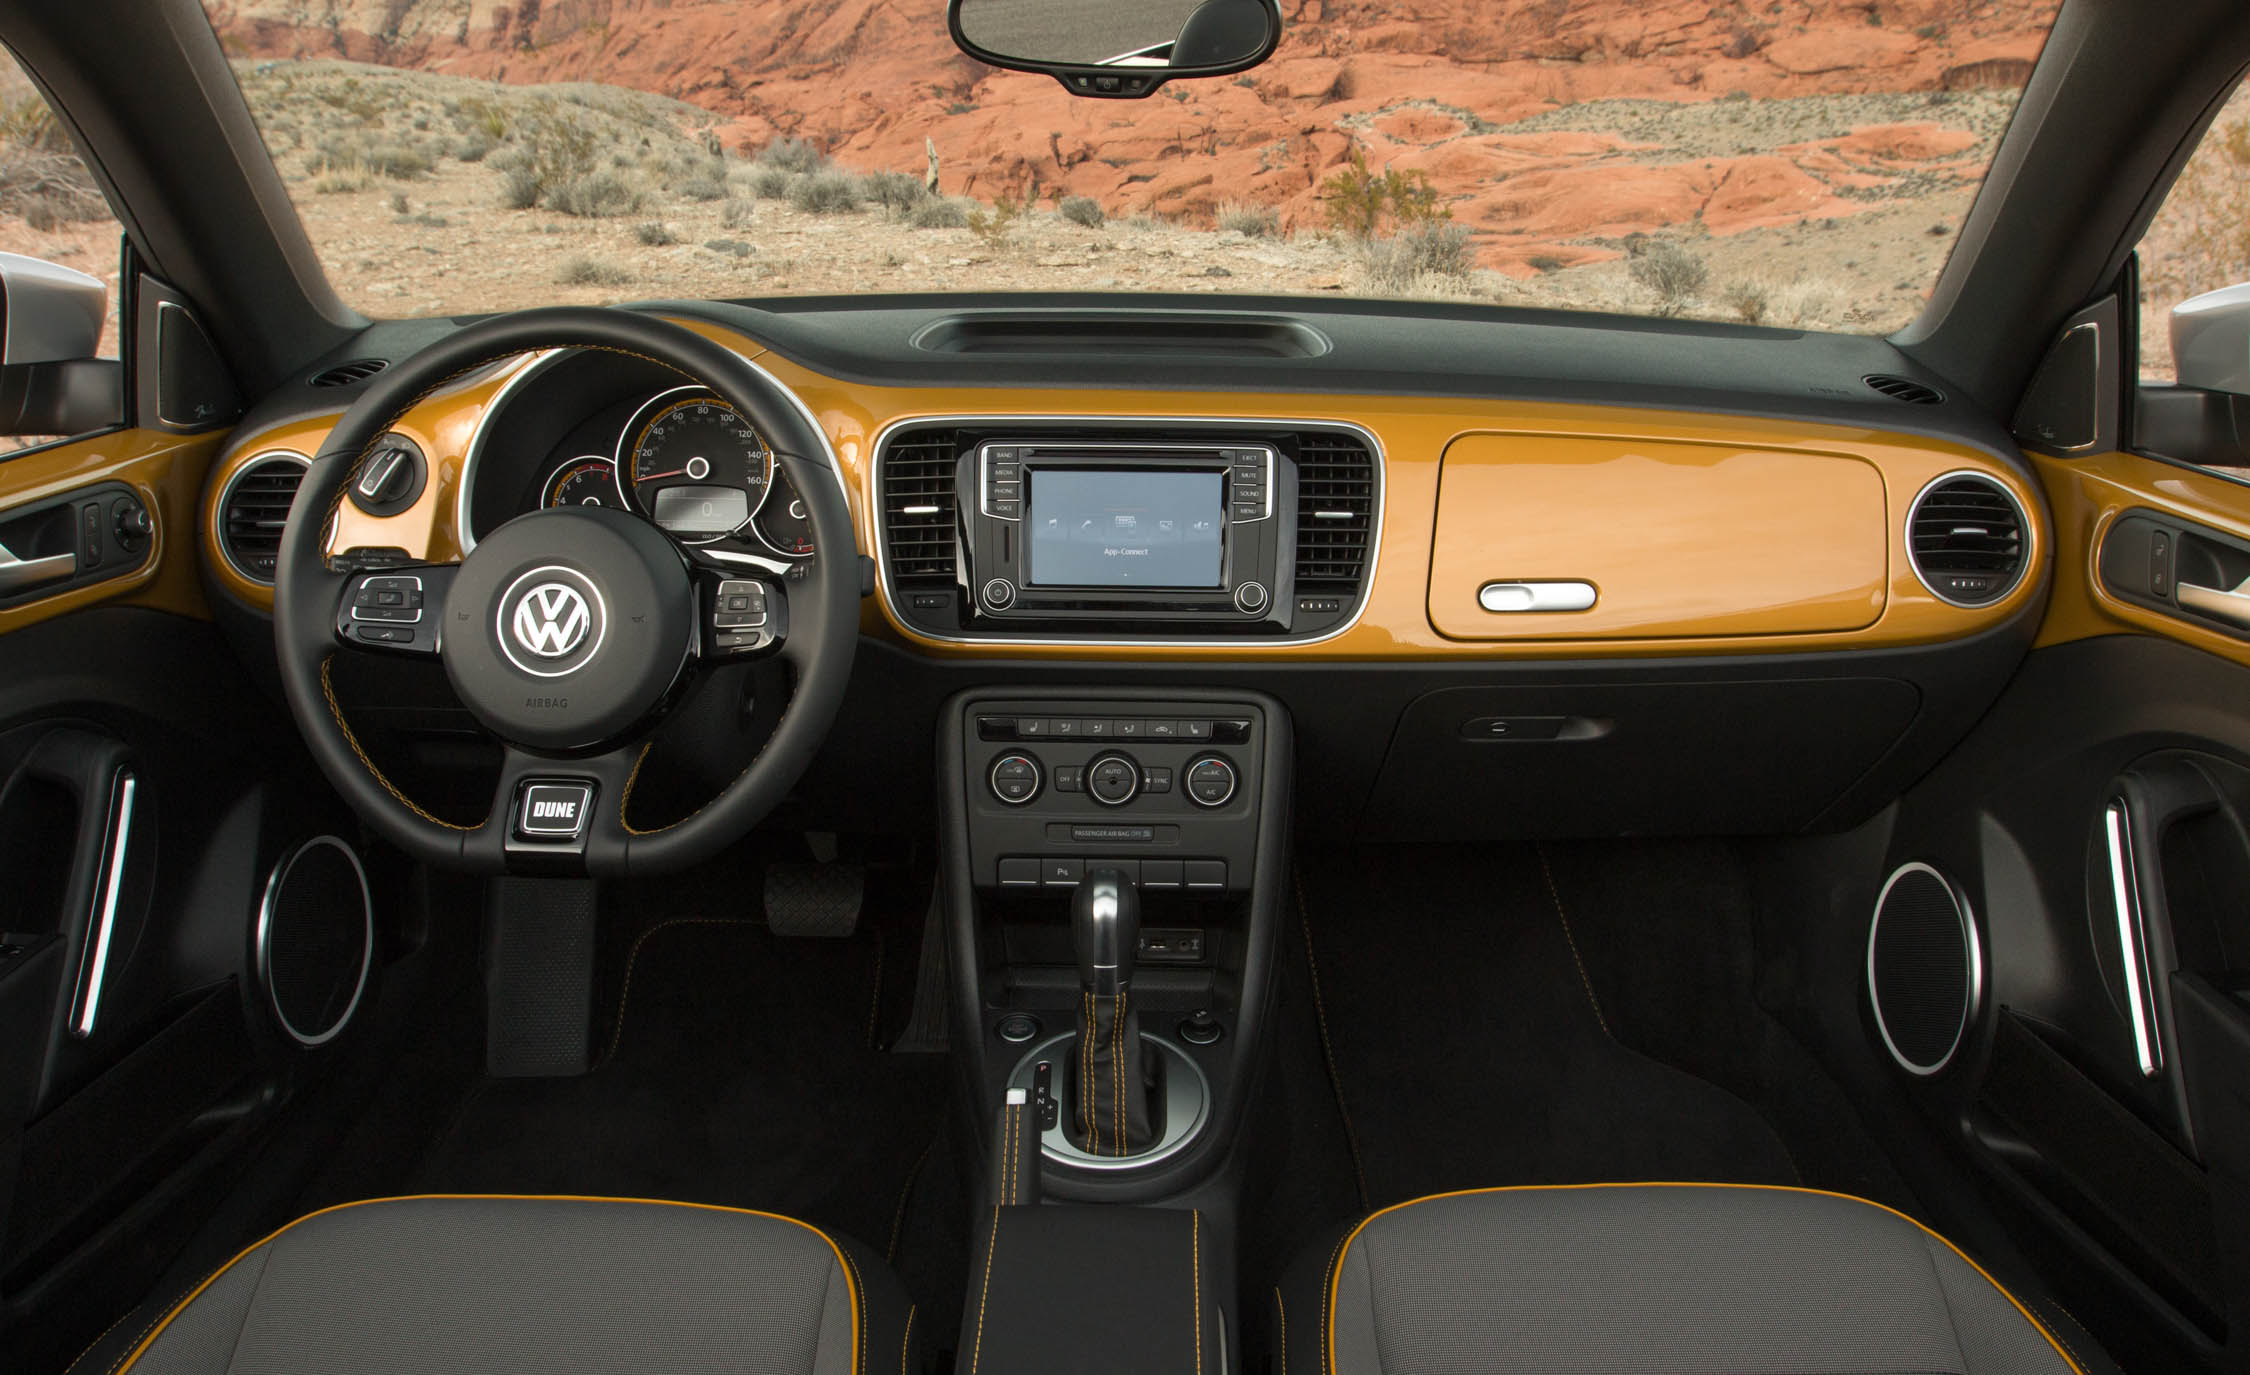 2016 Volkswagen Beetle Dune Interior Dashboard (Photo 25 of 32)